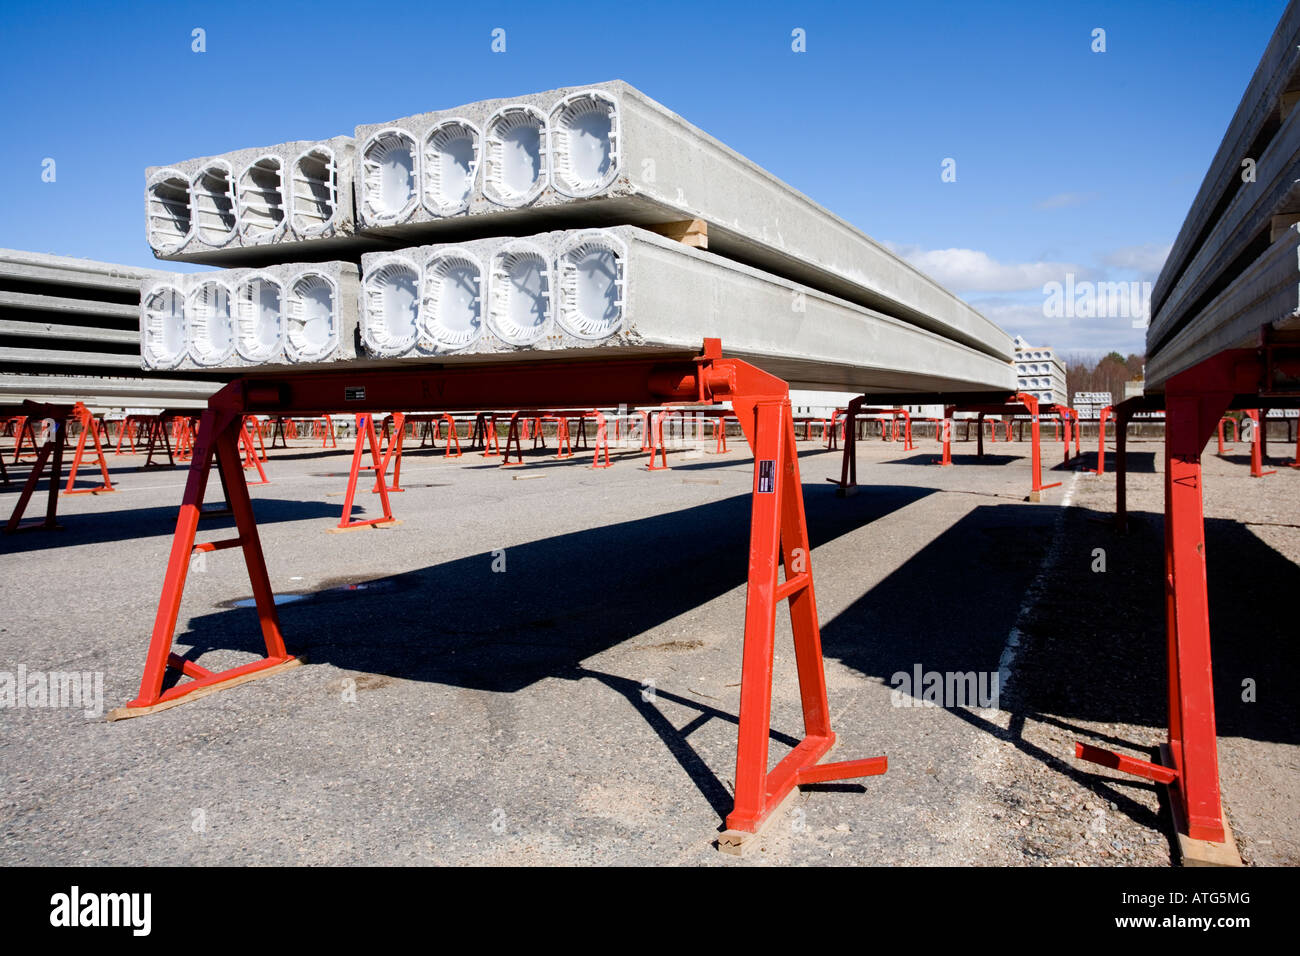 Inventory of prefabricated hollow core concrete construction elements - Stock Image